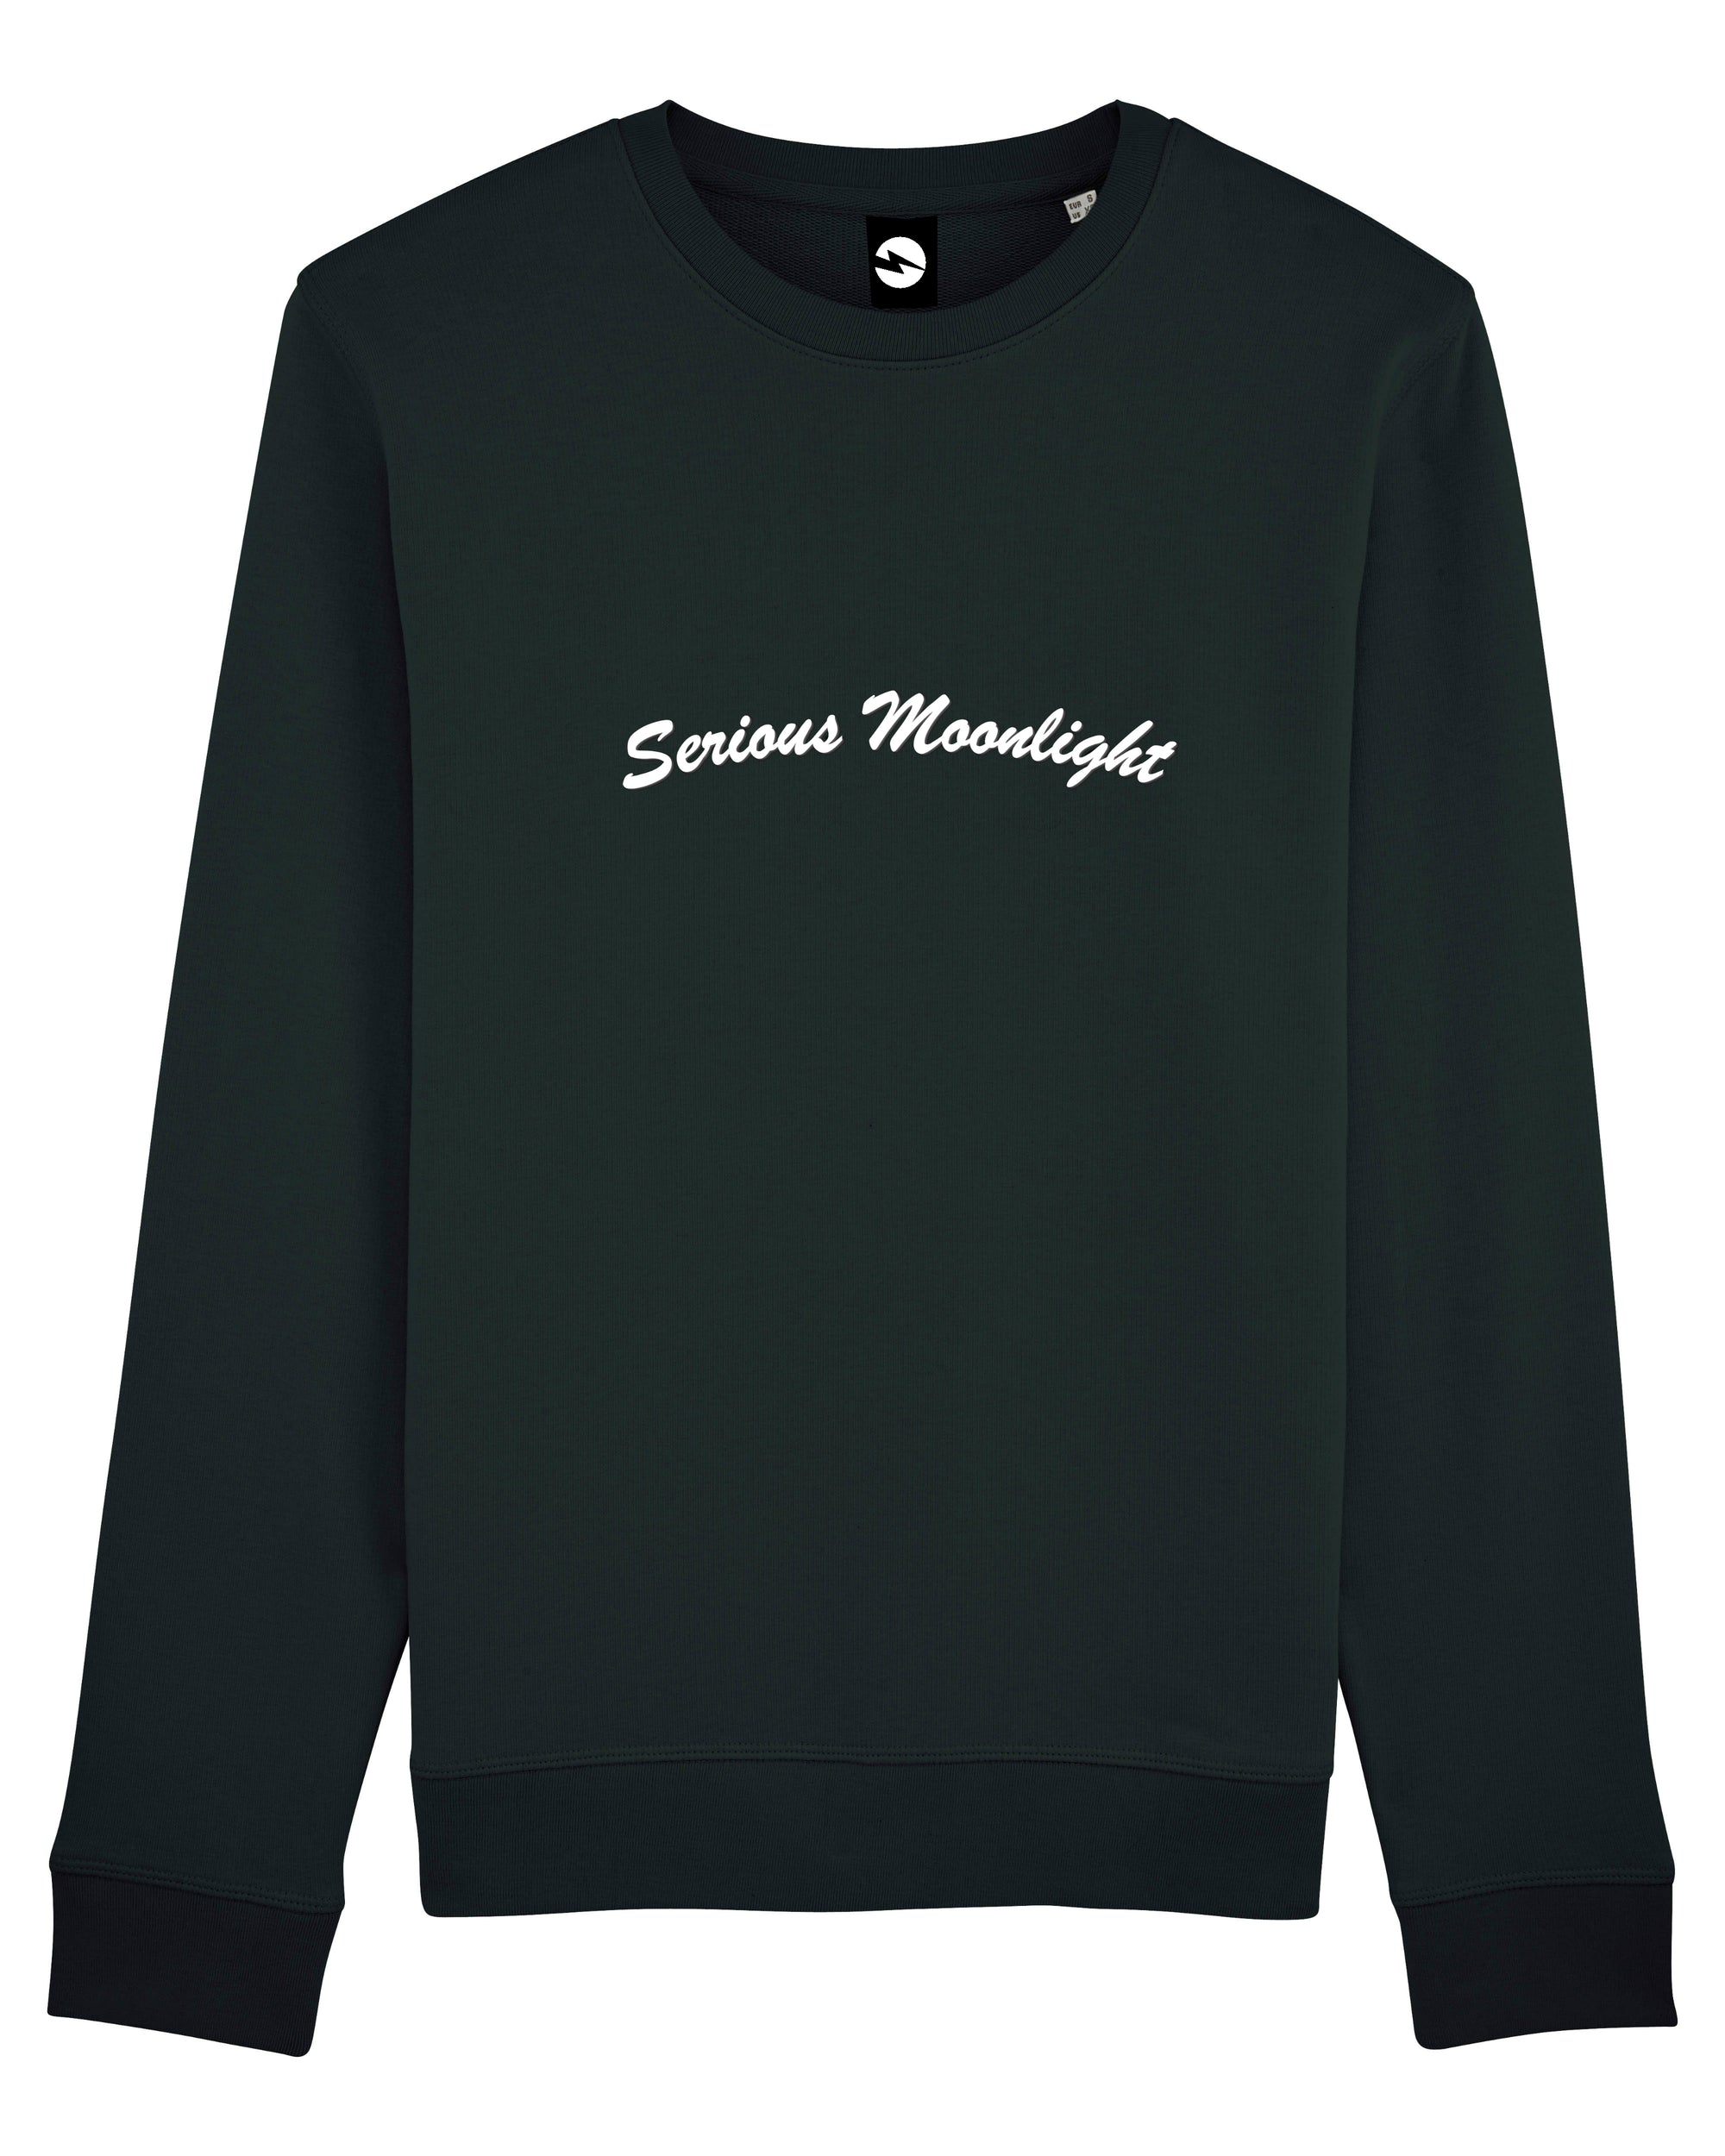 'SERIOUS MOONLIGHT' EMBROIDERED ORGANIC COTTON UNISEX SWEATSHIRT